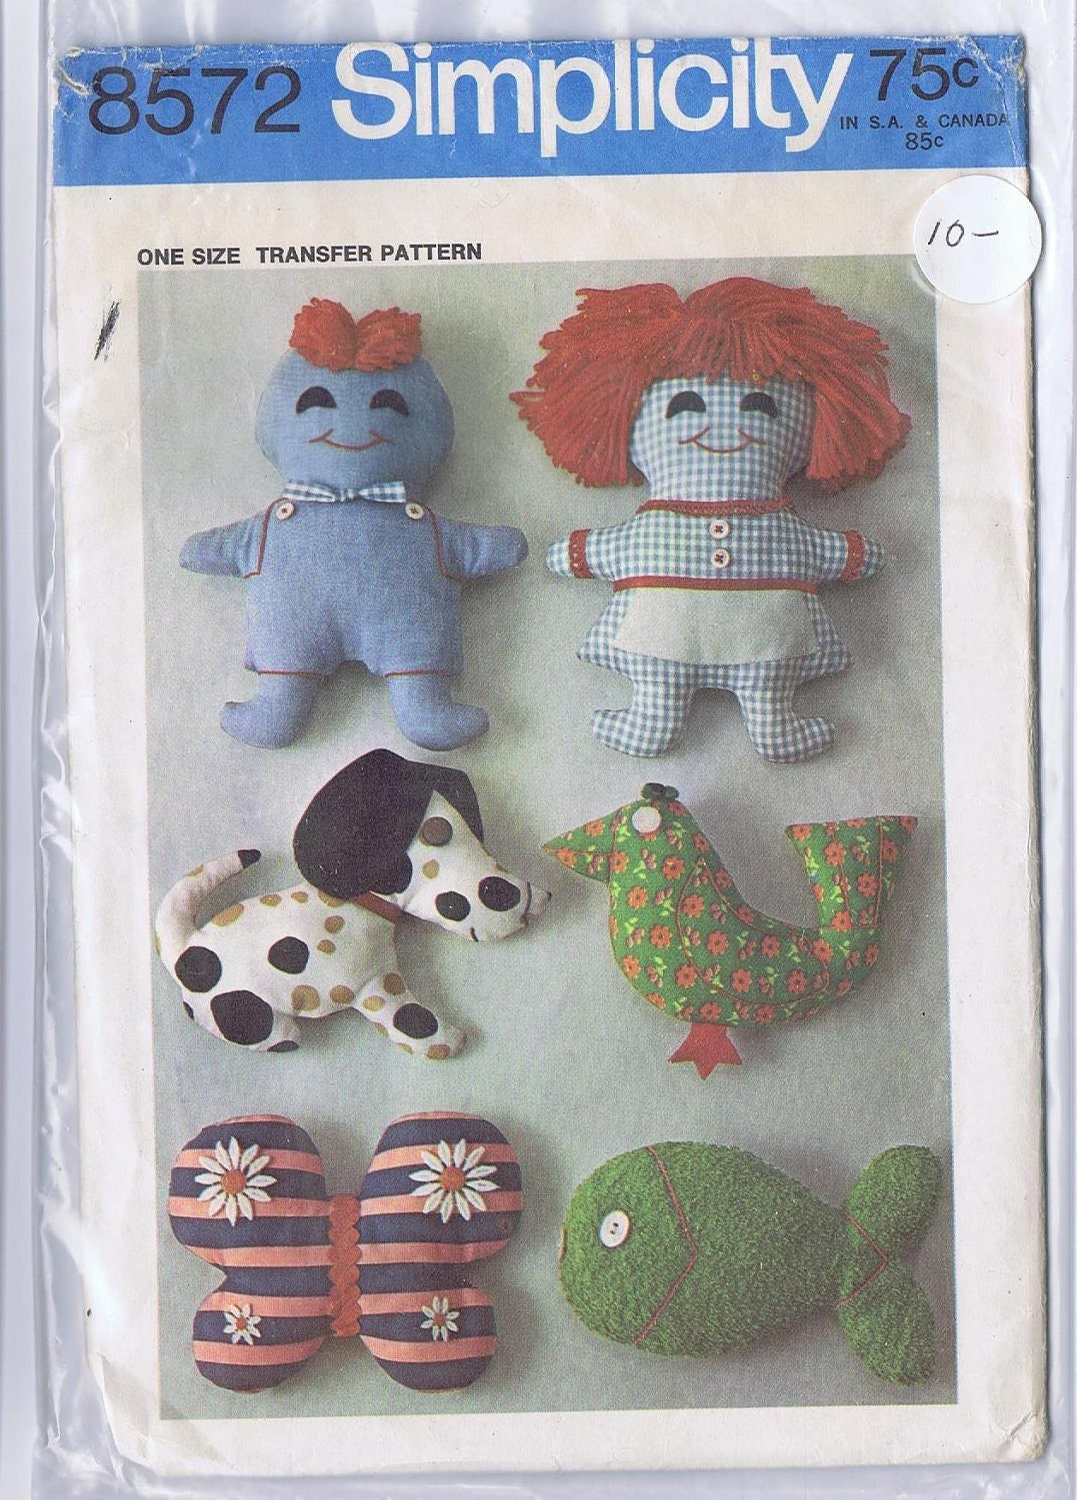 1960 Toys For Boys : Vintage childrens toy patterns for boys and girls by zadoodle